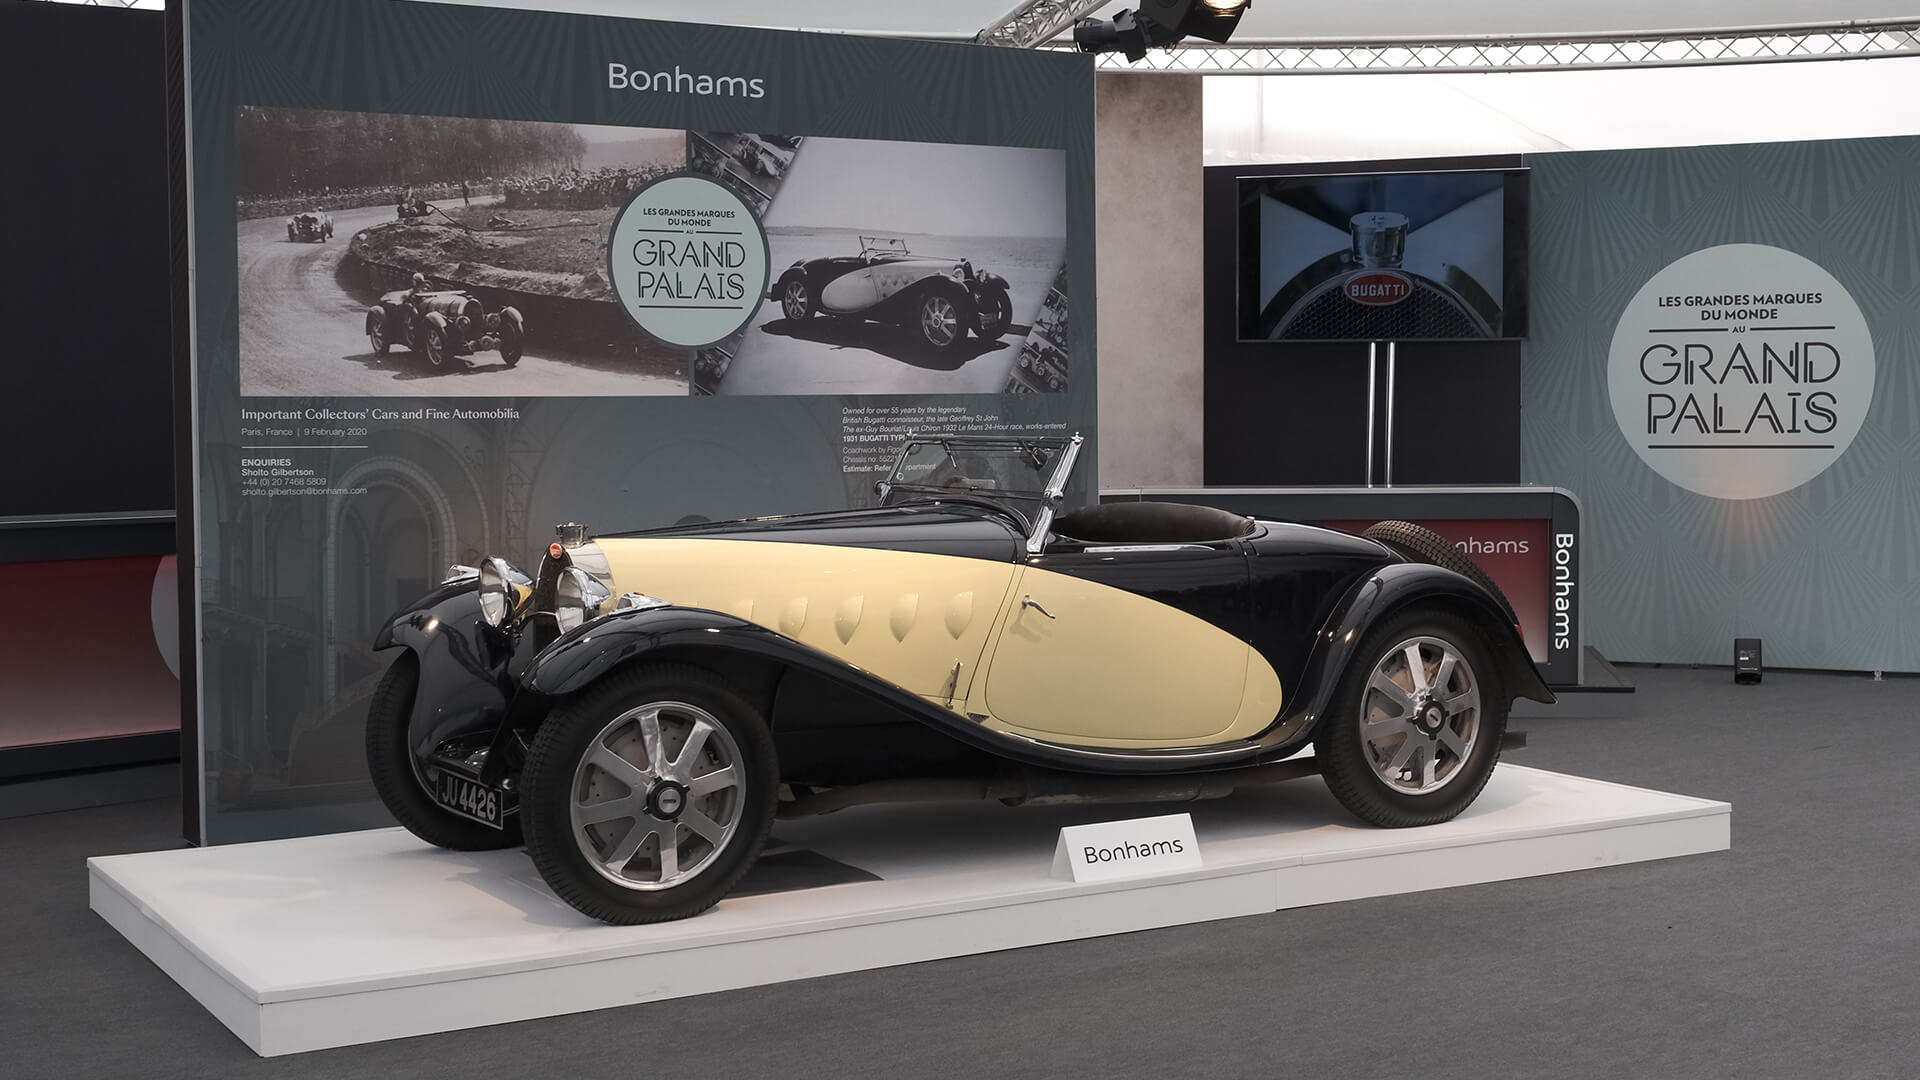 Bonhams to offer 1932 Bugatti Type 55 at Rétromobile 2020